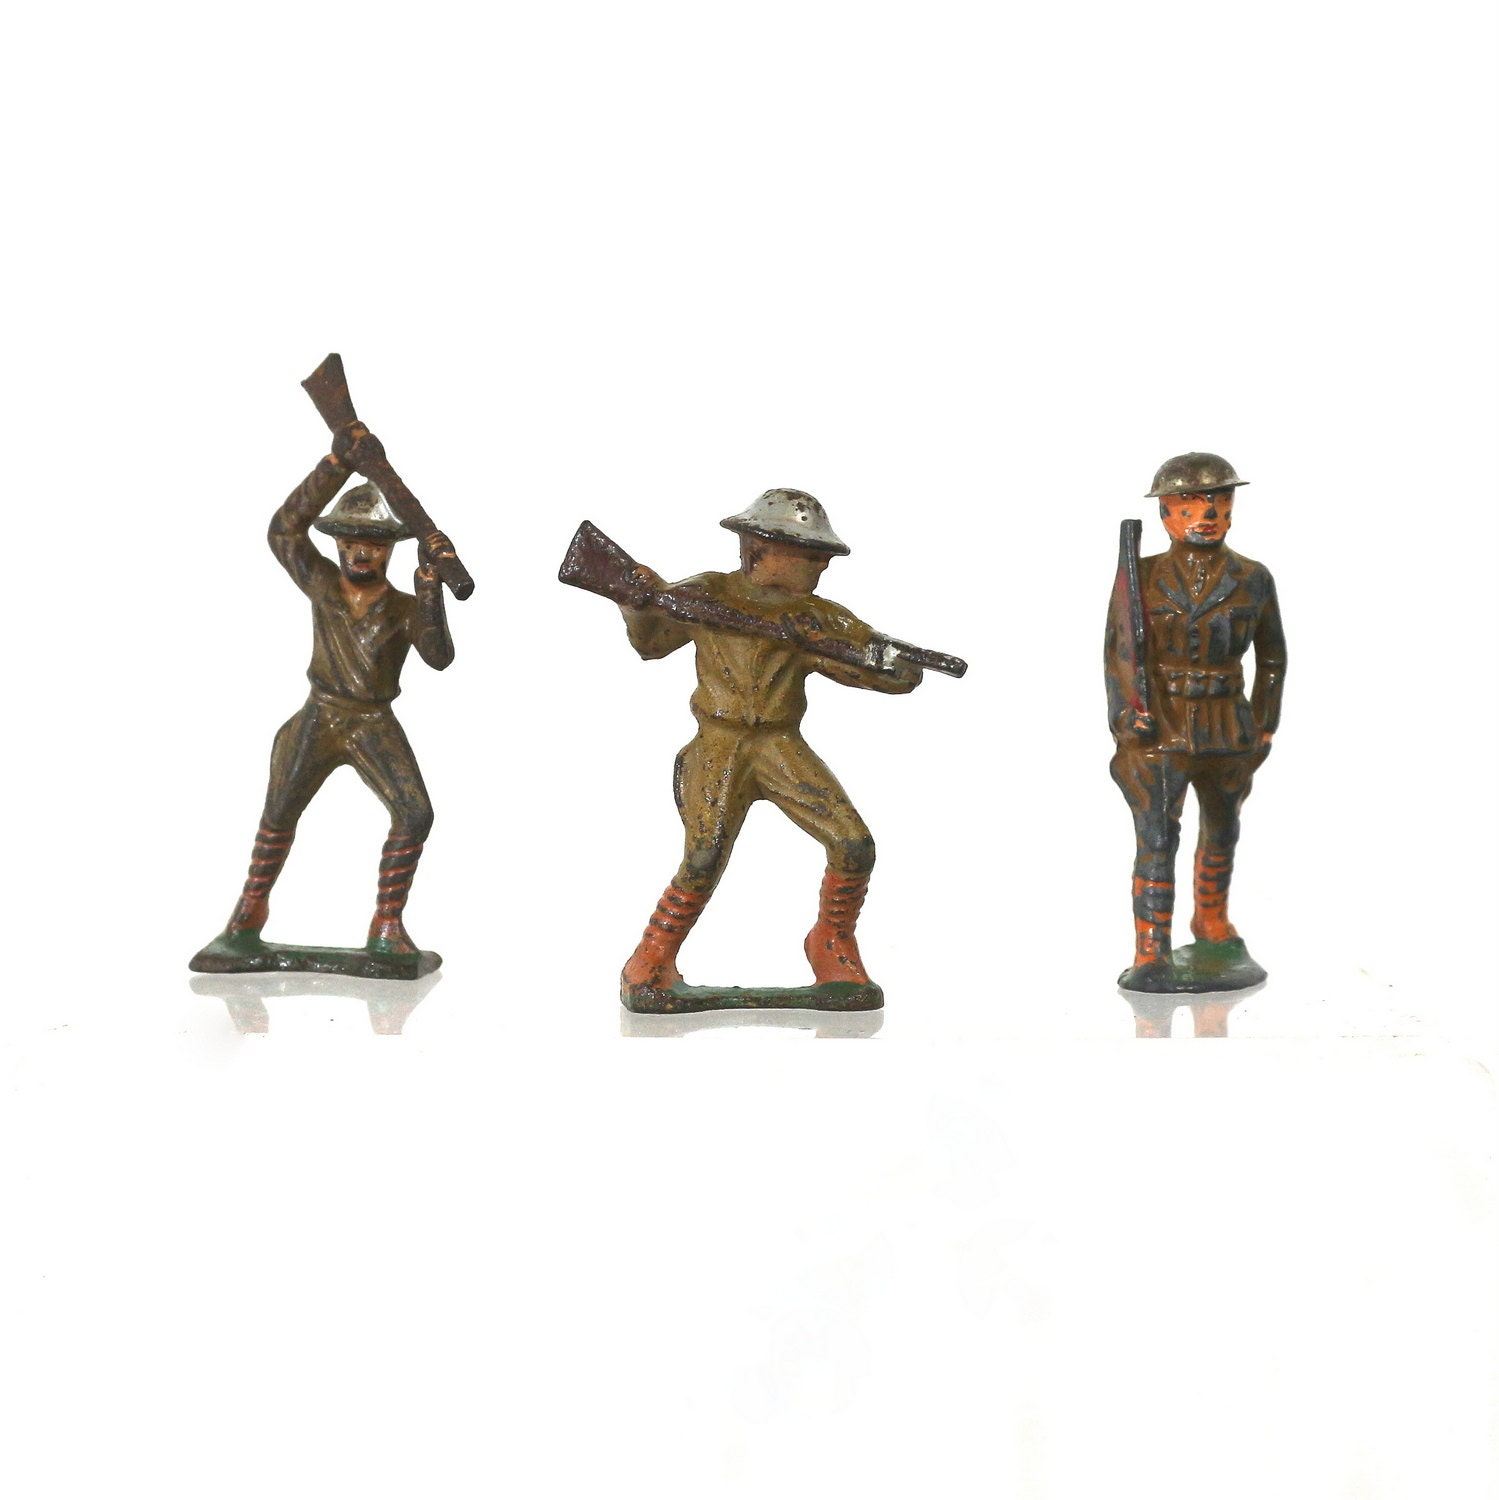 Army Toys For Boys : S toy army soldier set by barclay vintage lead